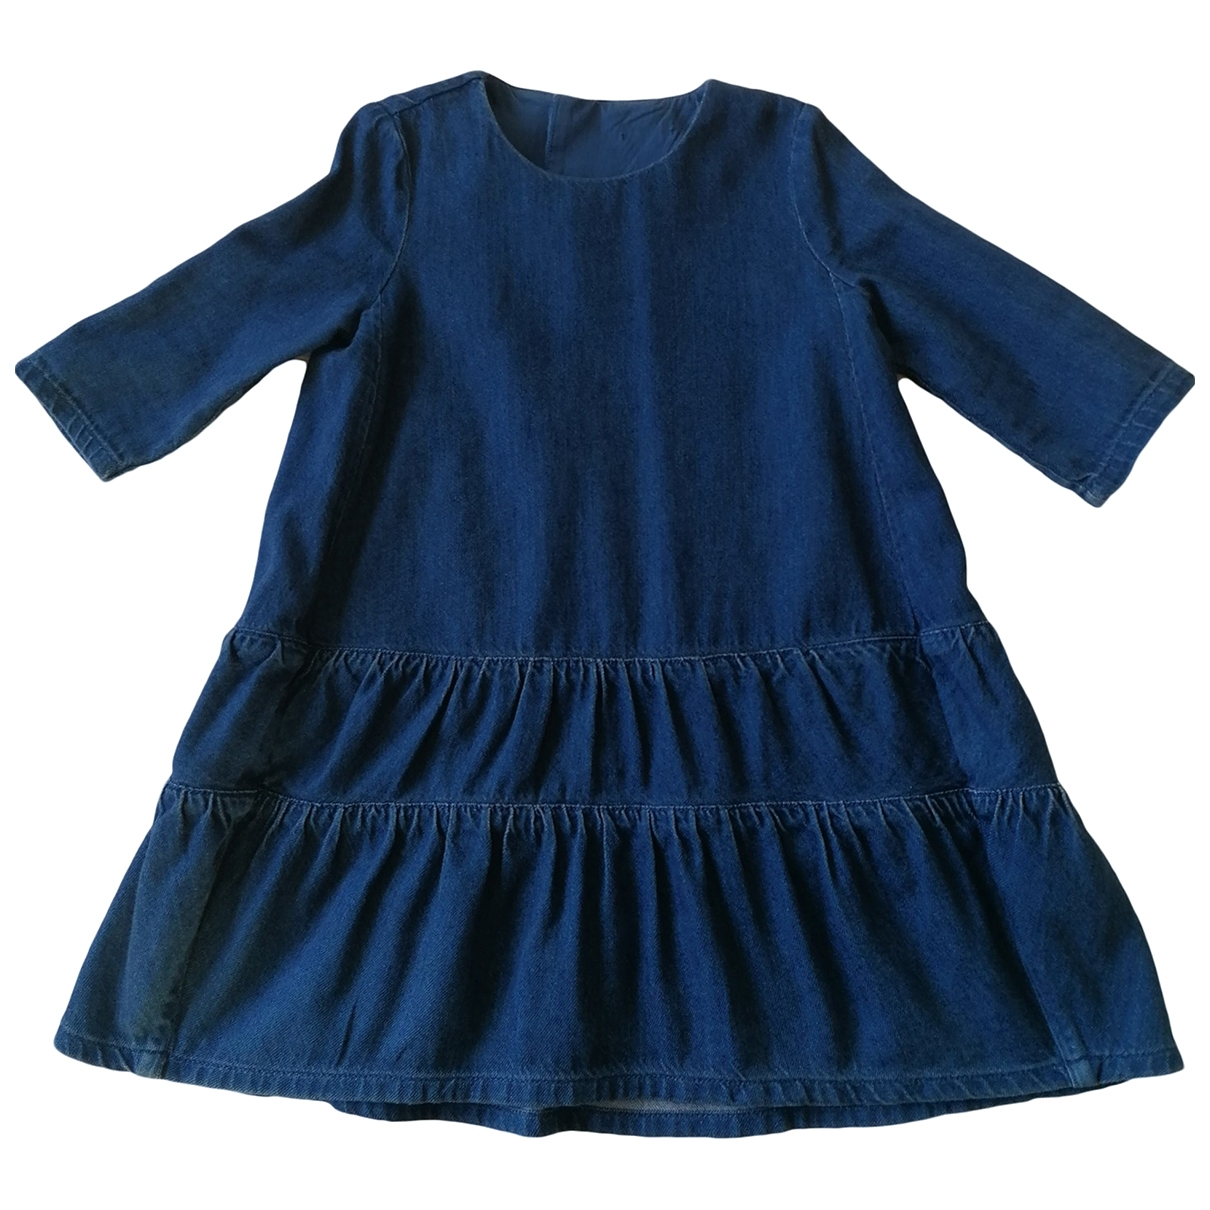 Cos \N Blue Cotton dress for Kids 4 years - up to 102cm FR